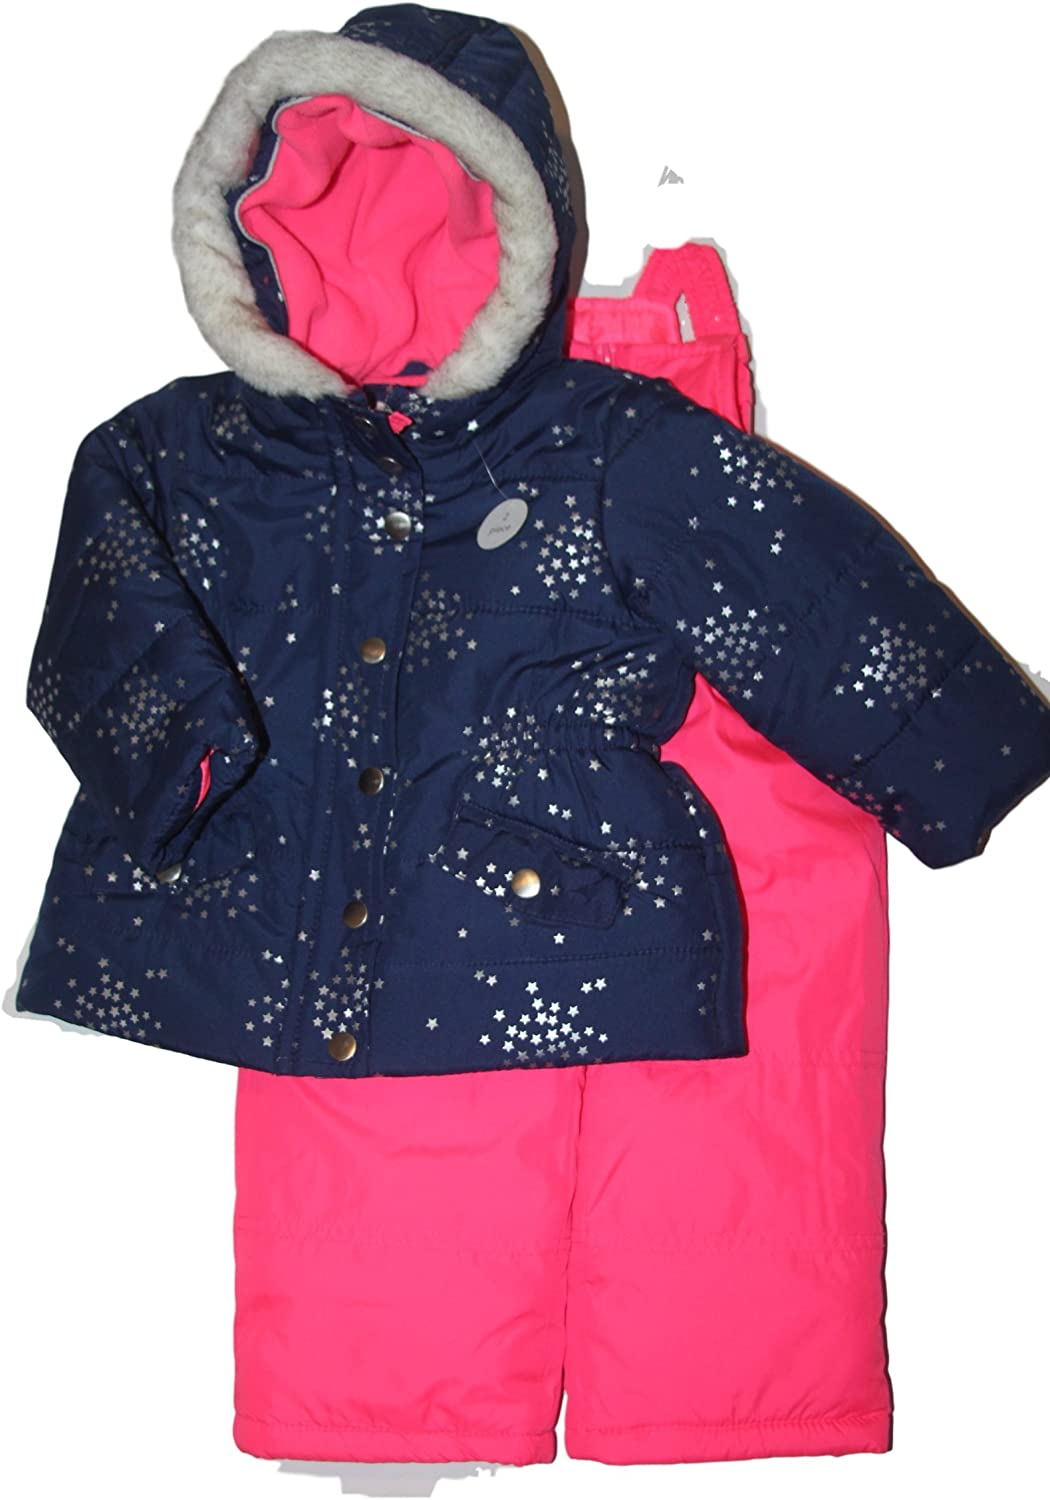 Carters Baby Girls Two Piece Snowsuit-Navy//Pink 12M